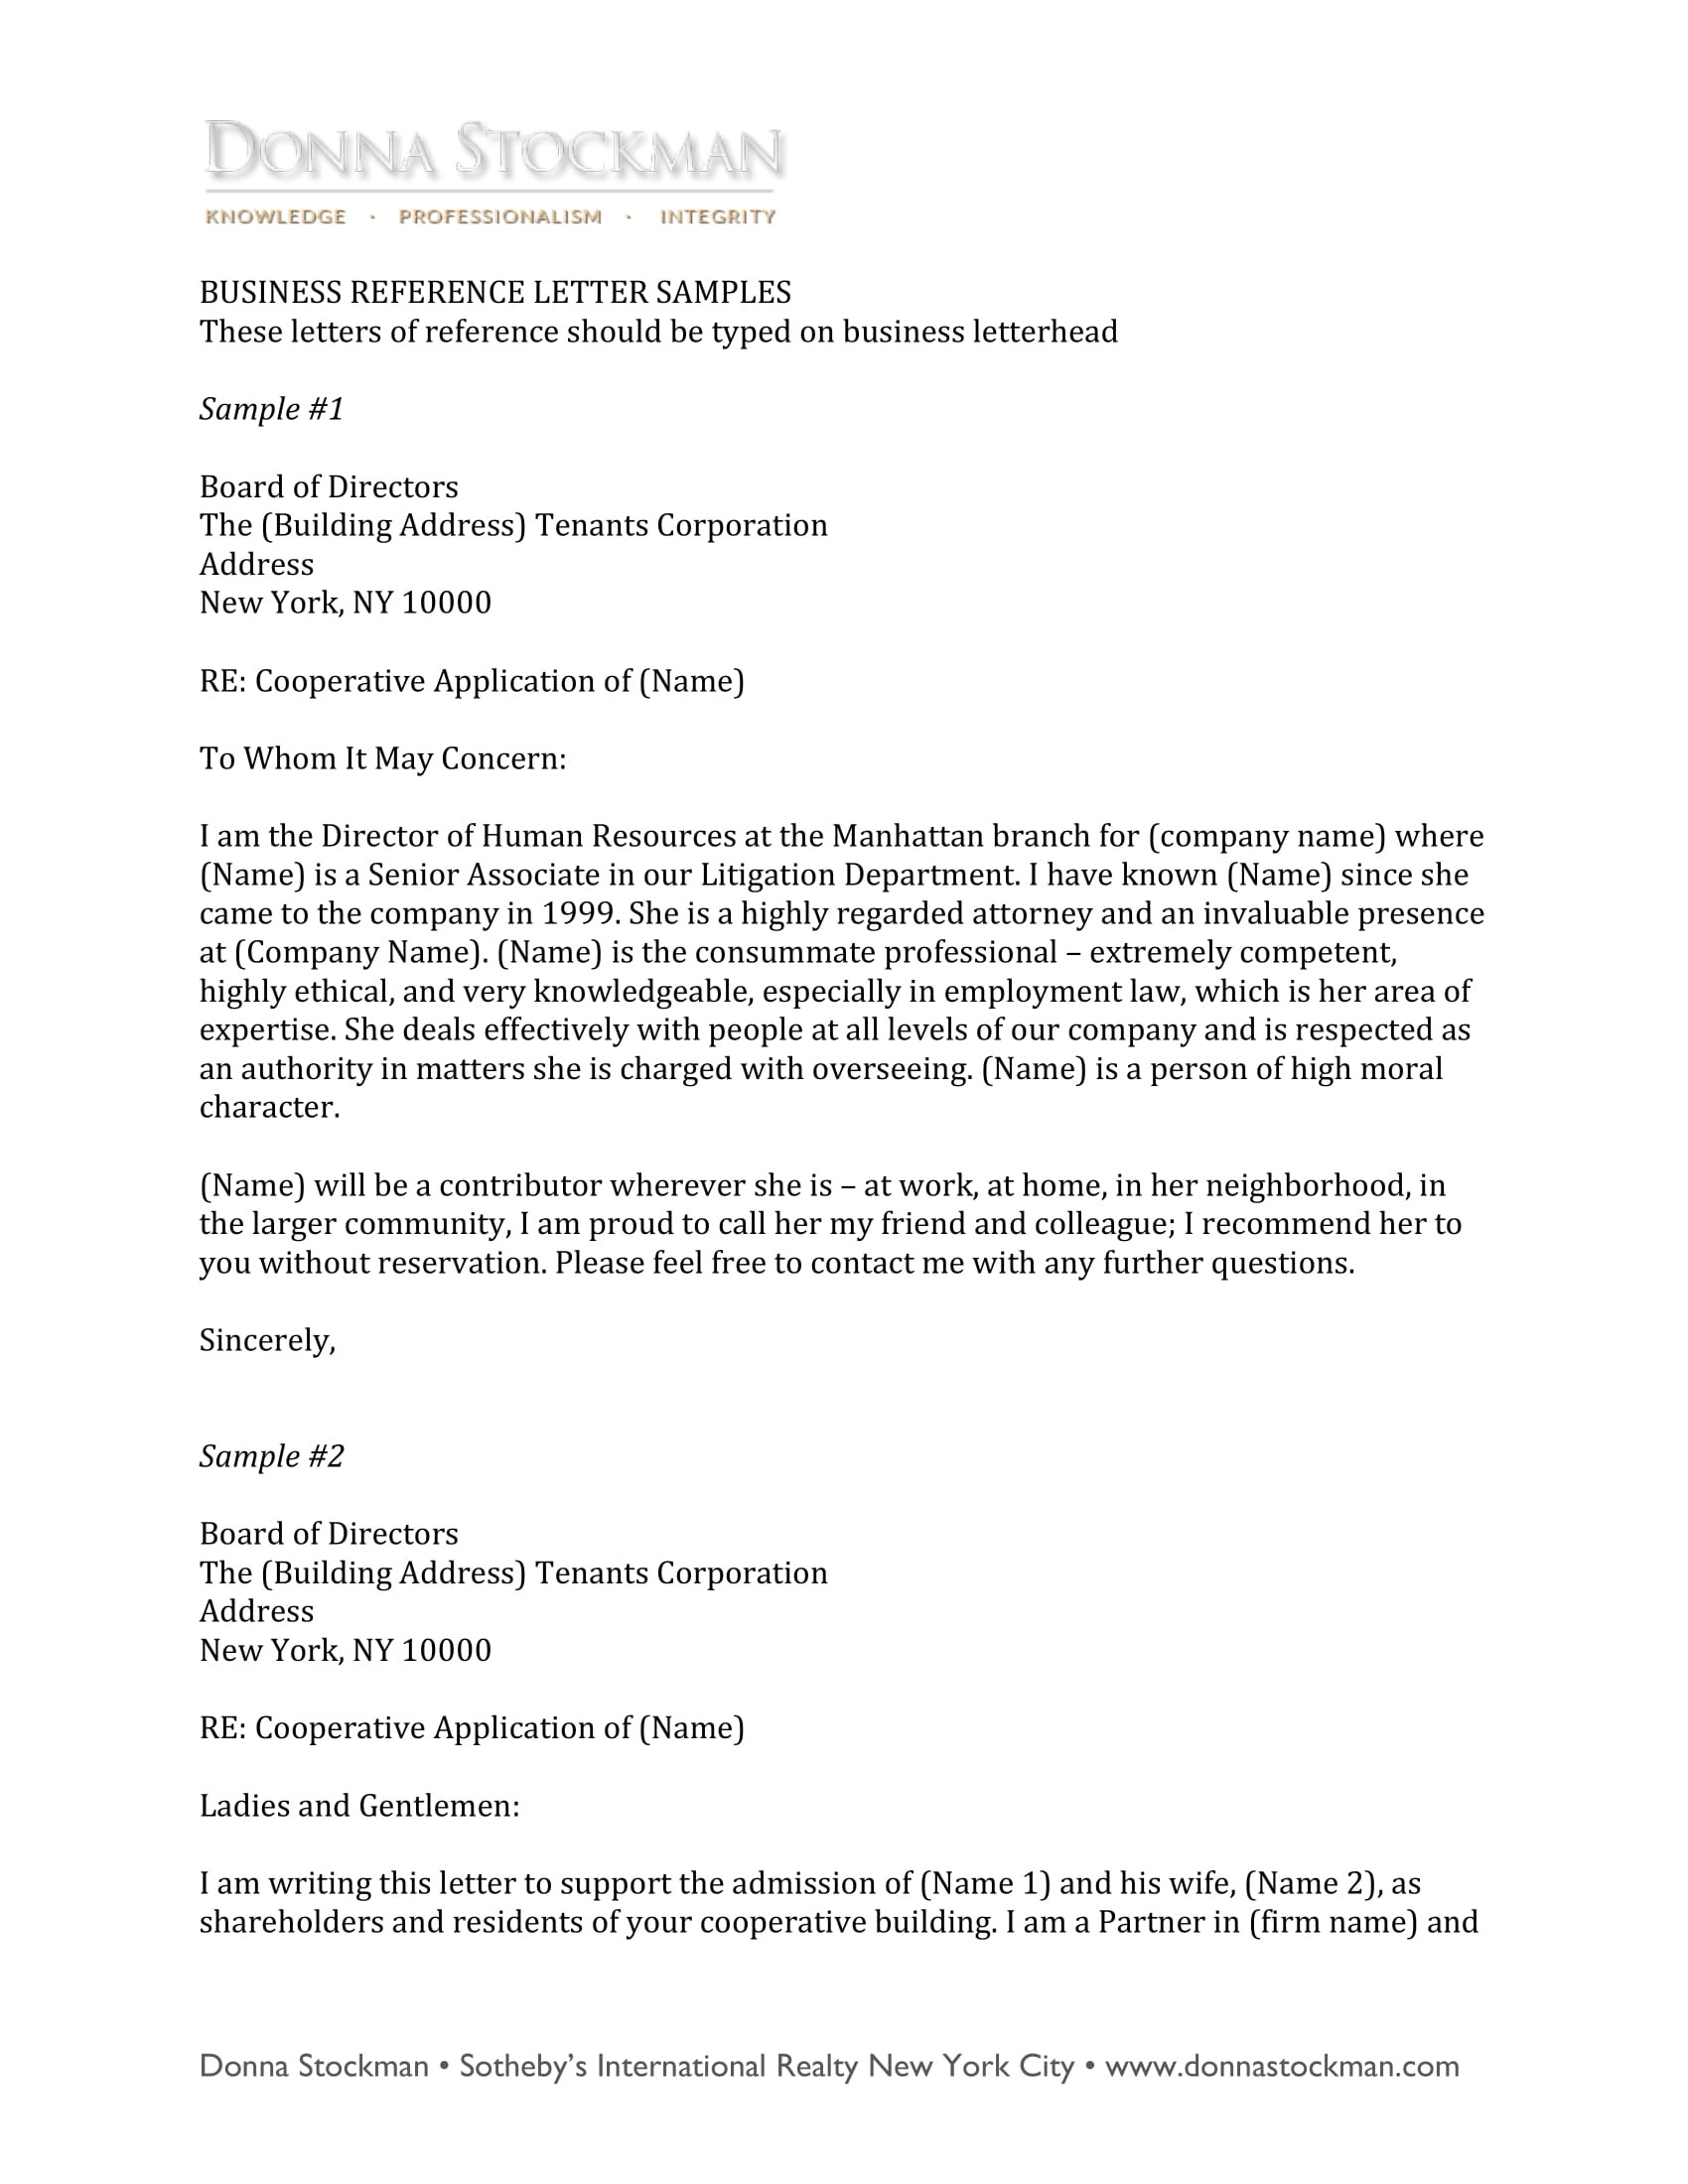 cooperative housing business reference letter example